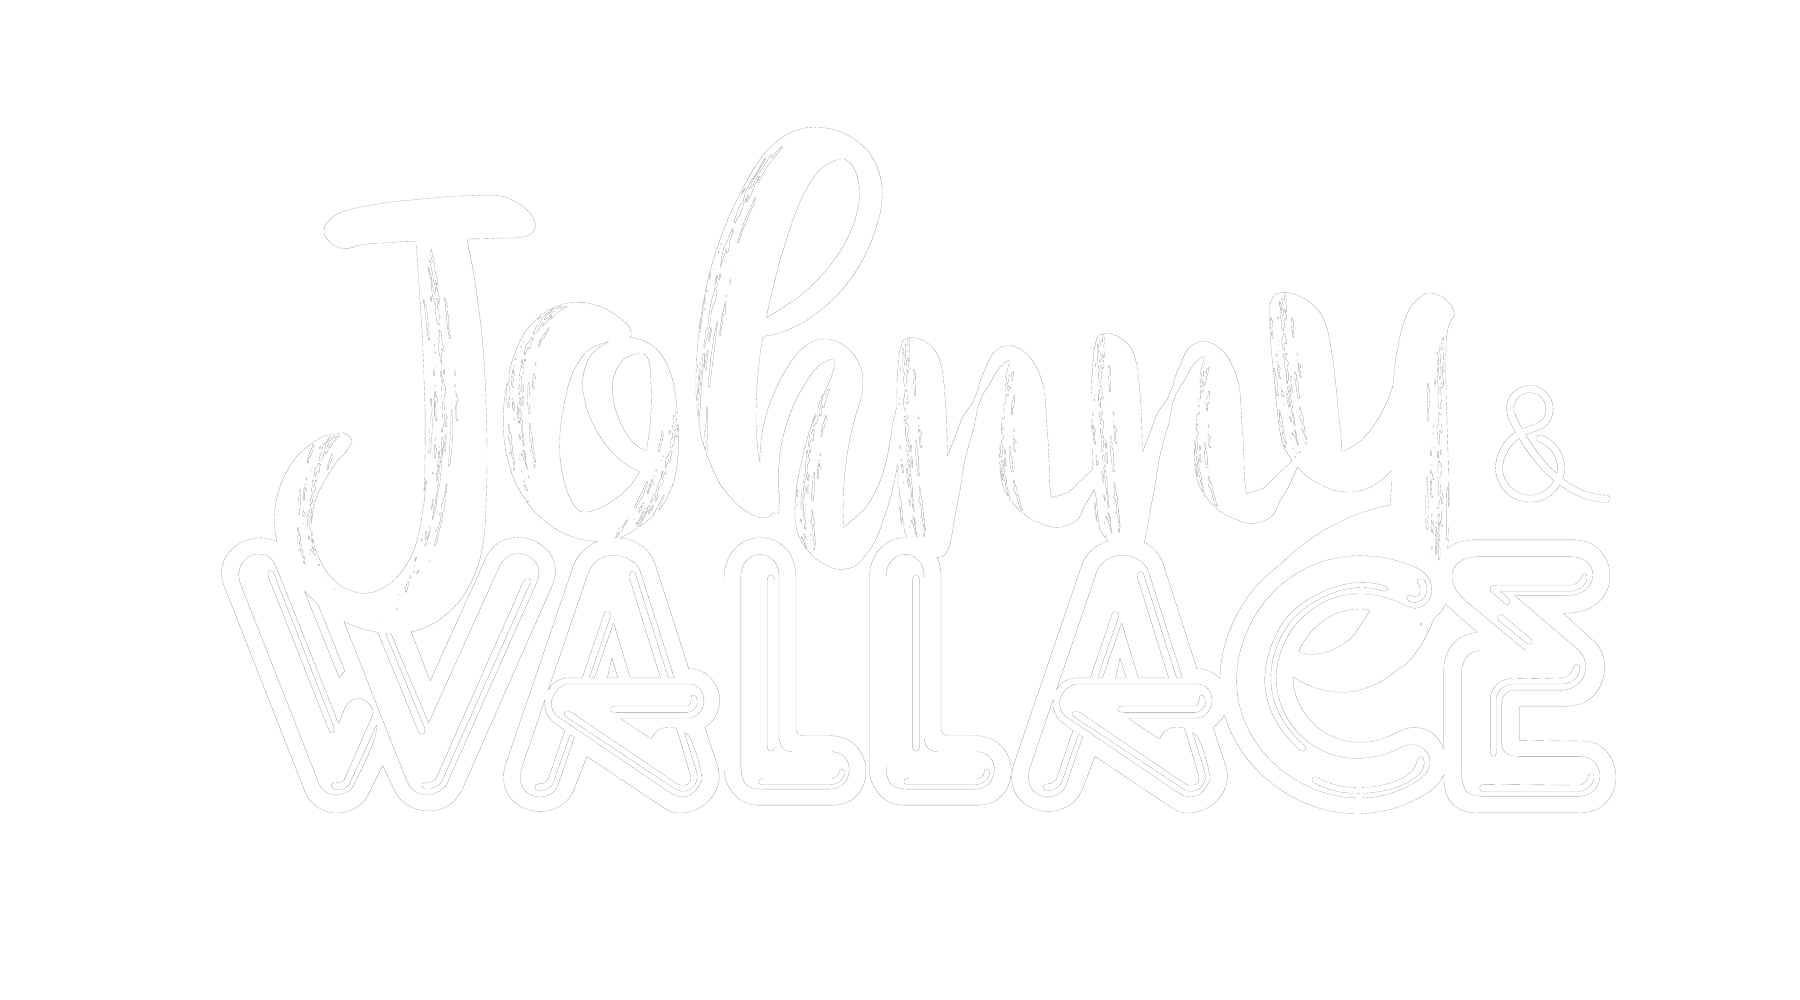 JOHNNY & WALLACE